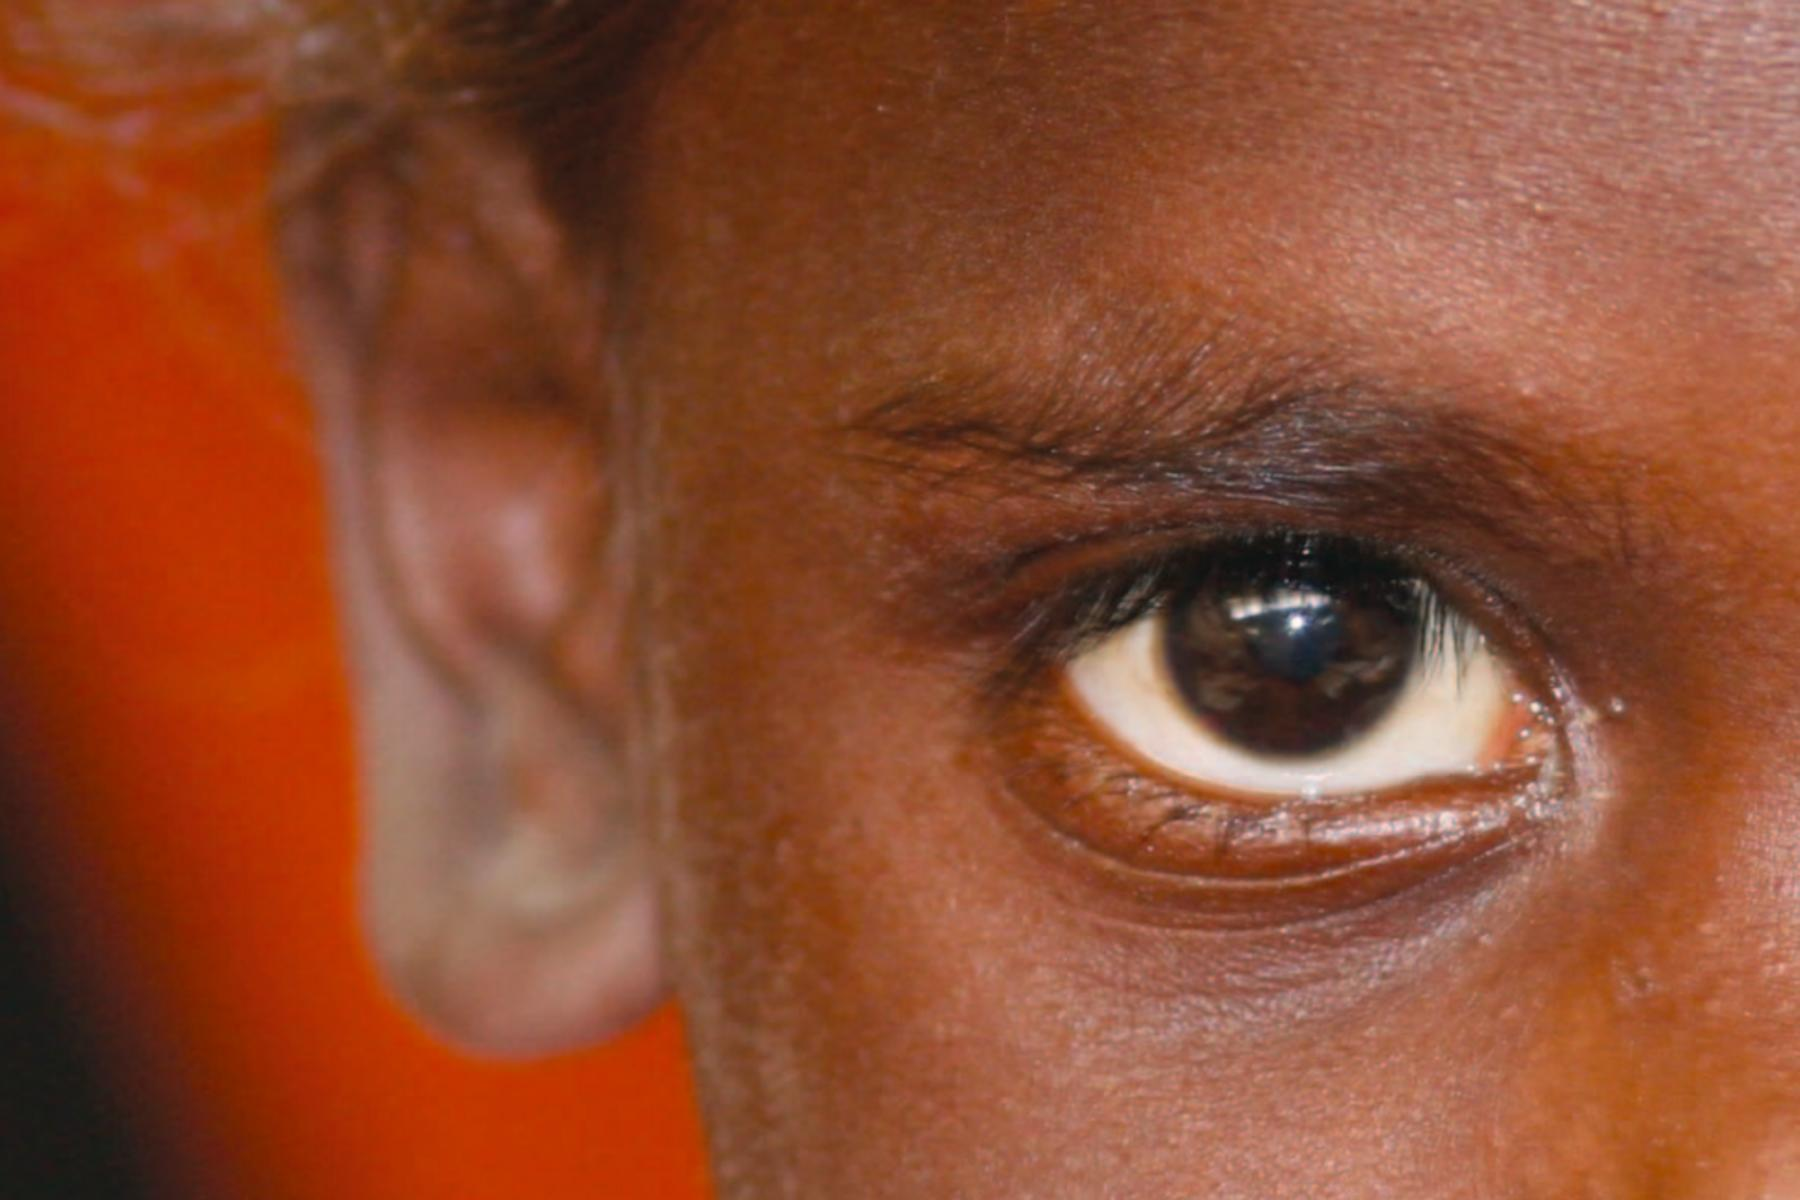 The annual update on the implementation of the Roadmap to Close the Gap for Vision reveals that although more than half (57 per cent) of the recommendations have been fully implemented, and 116 of 138 intermediary steps taken, Australia has missed its 2020 target. Image: Indigenous Eye Health, the University of Melbourne